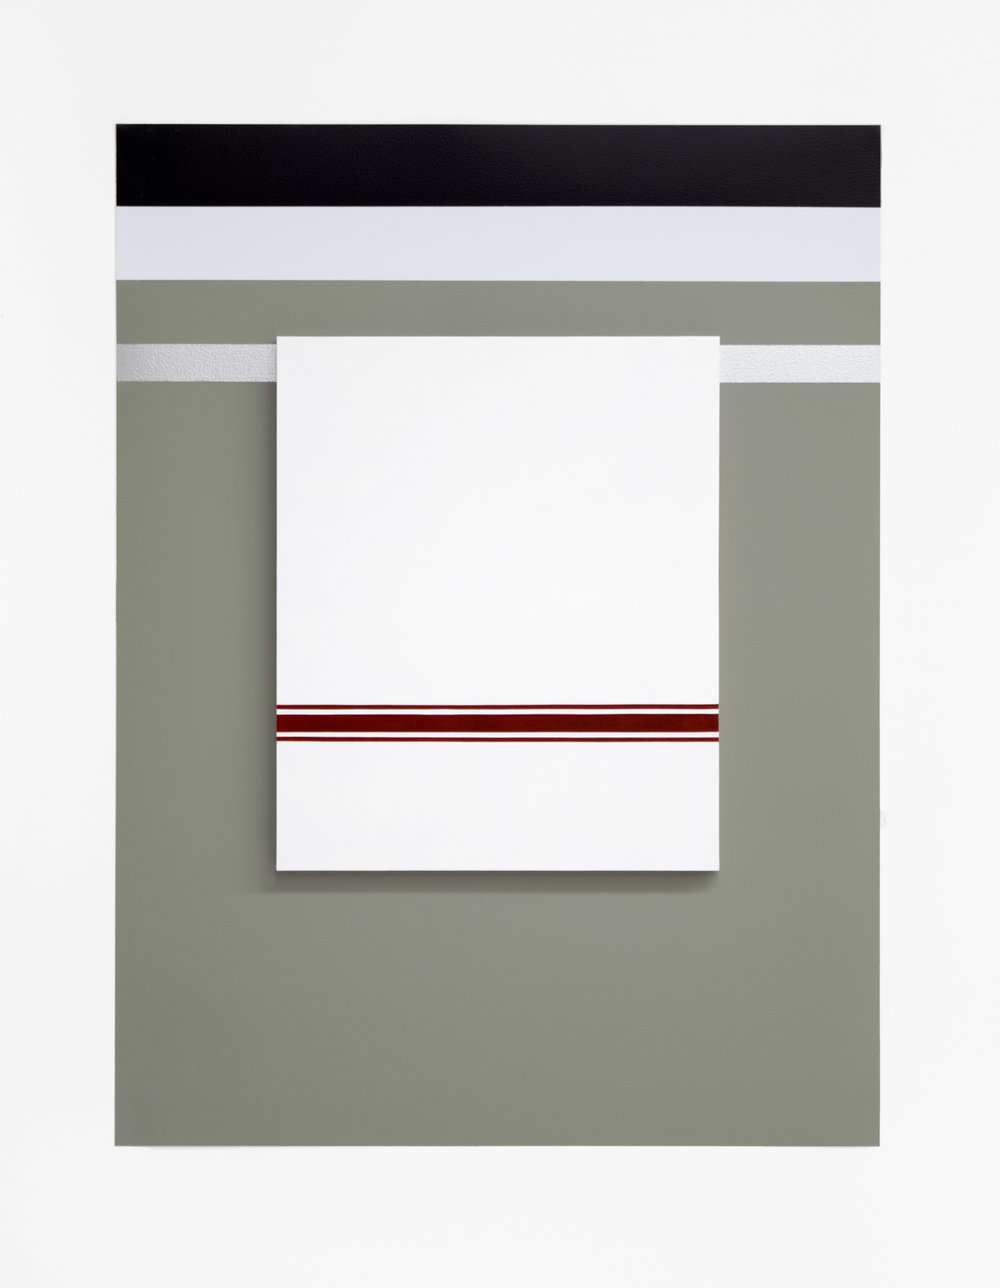 """Self Portrait No. 3,  2019, 28"""" h x 21"""" w x 3/4"""" d (overall). 1 Painting: 14 ½"""" x 12"""" x 3/4"""", oil on linen over panel. Wall: Benjamin Moore House paints: Secret #AF-710, White Diamond #2121-60, #Black Berry 2119-20, silver paint, nails."""